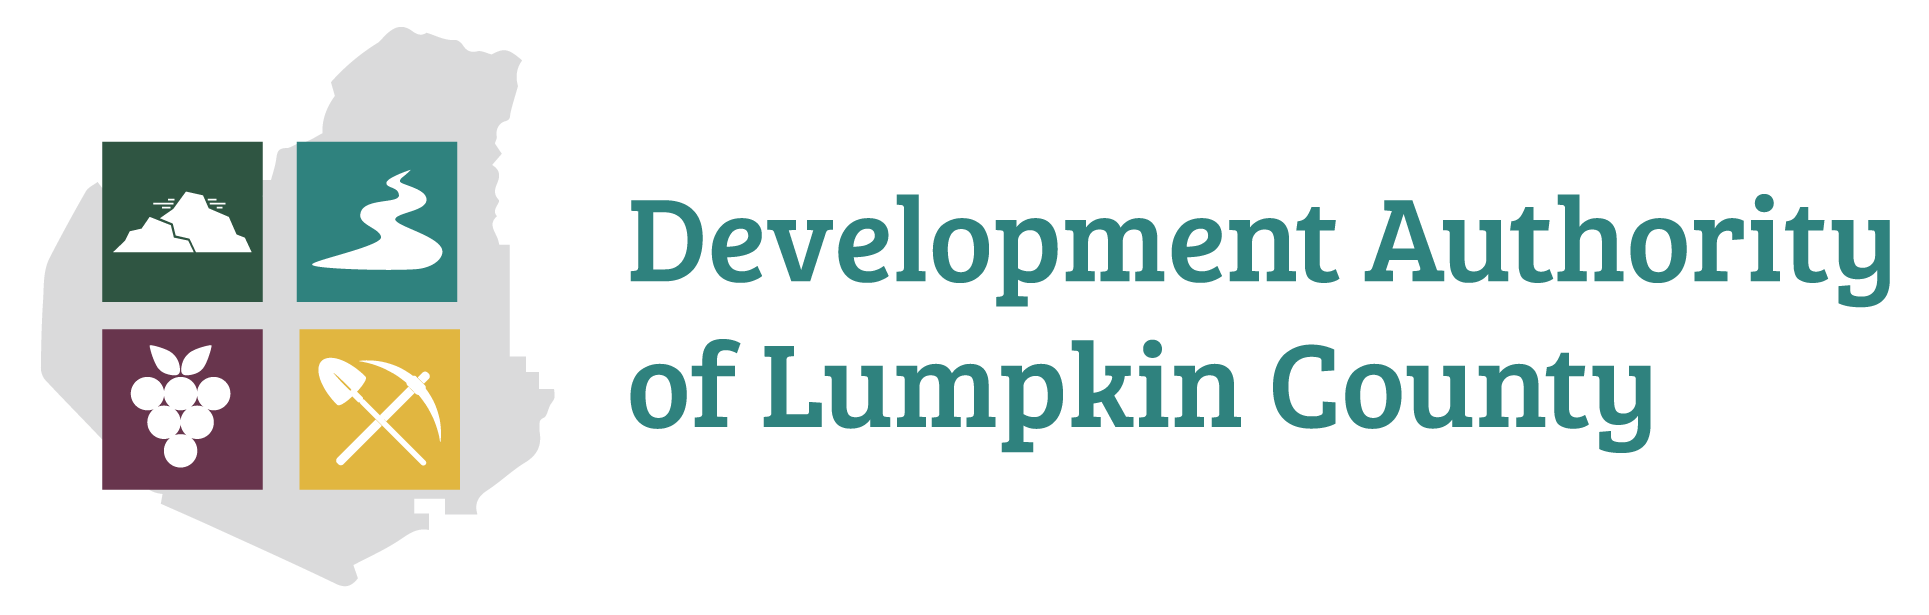 Development  Authority of Lumpkin County